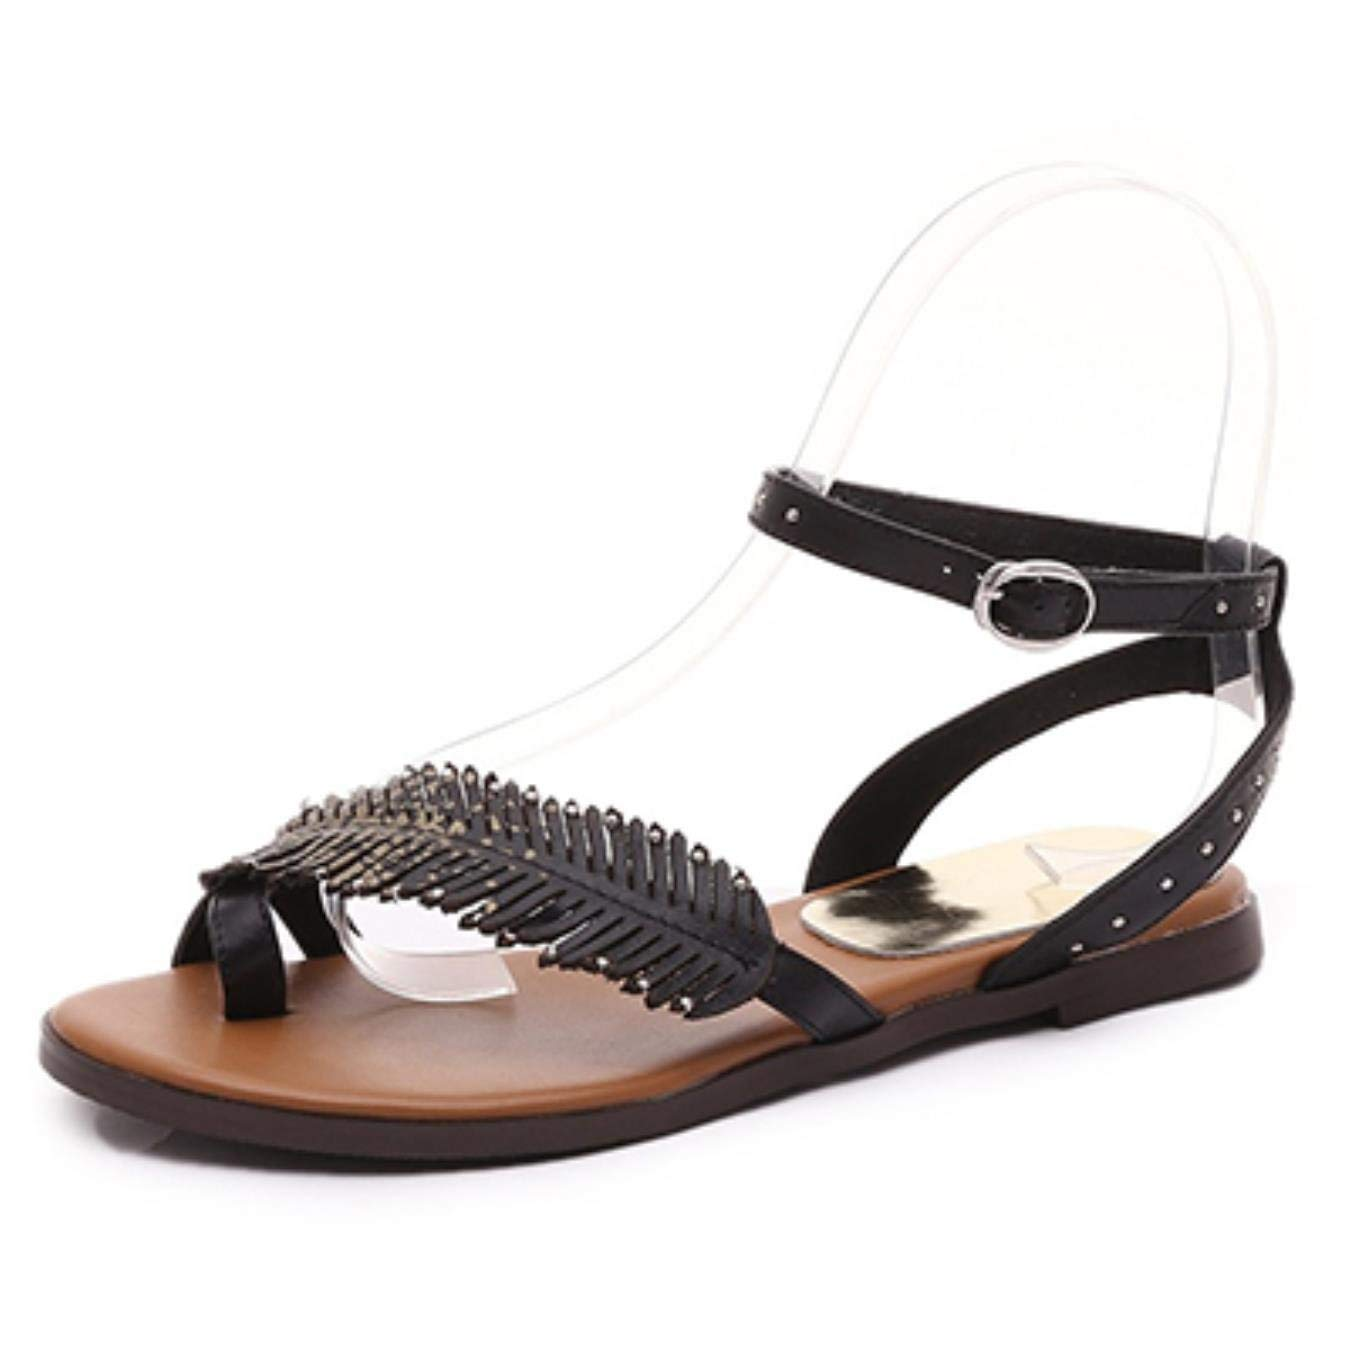 5d9b666103 Get Quotations · Summer Real Leather Sandals Leaves Round Toe Buckle Flat  Sandals College Students Sandals Women Shoes Ankle